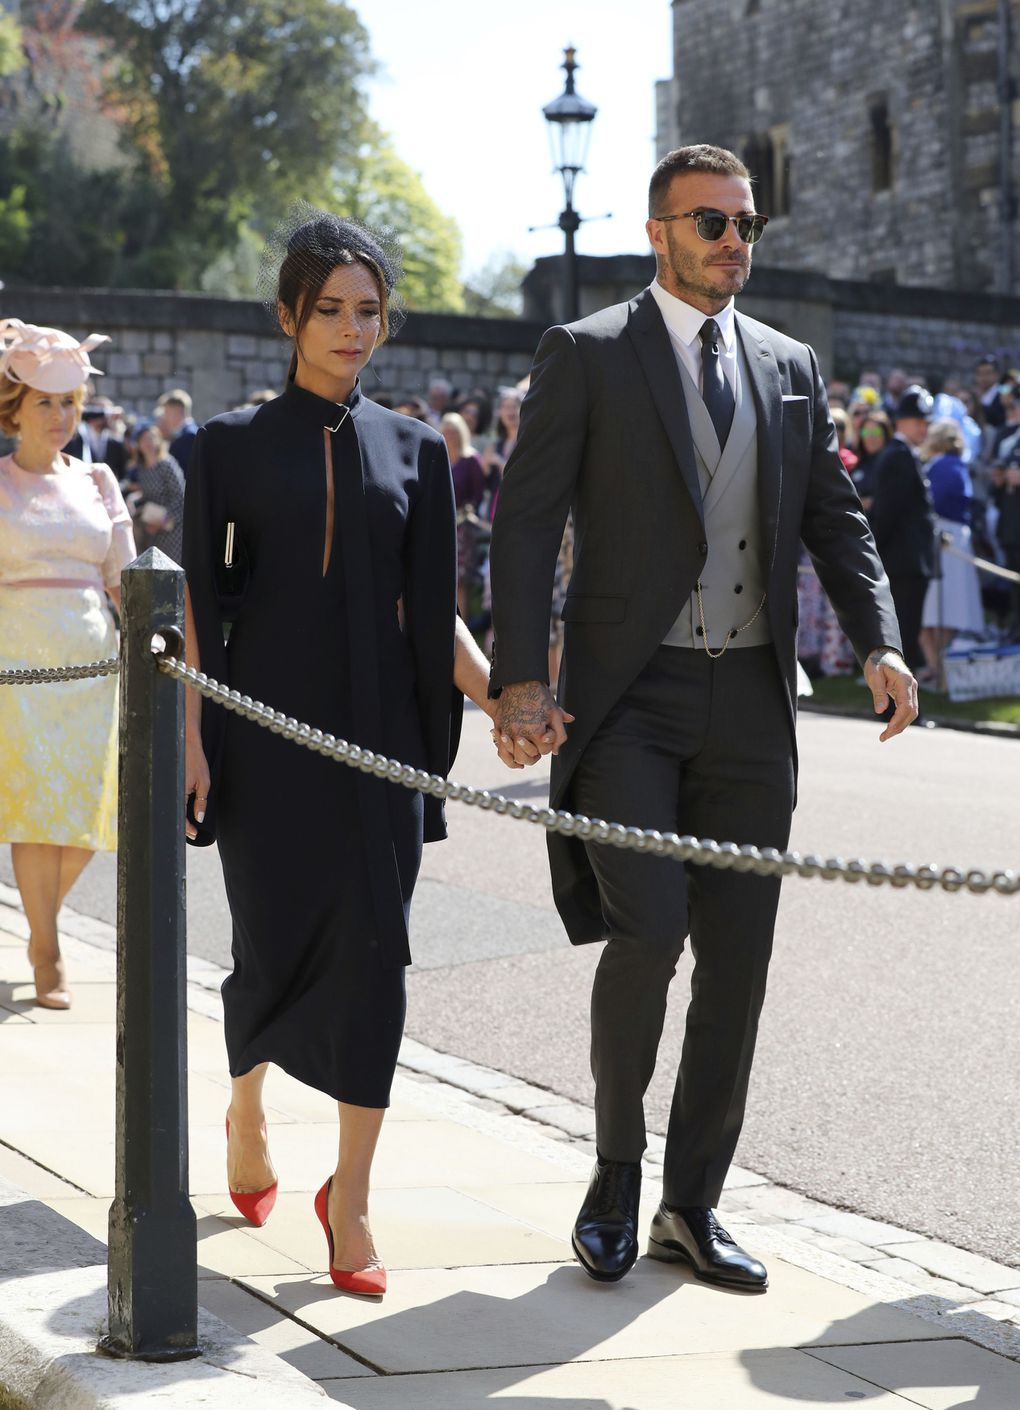 Oprah At Prince Harry Wedding.In Photos Oprah George Clooney And Royalty At Prince Harry And